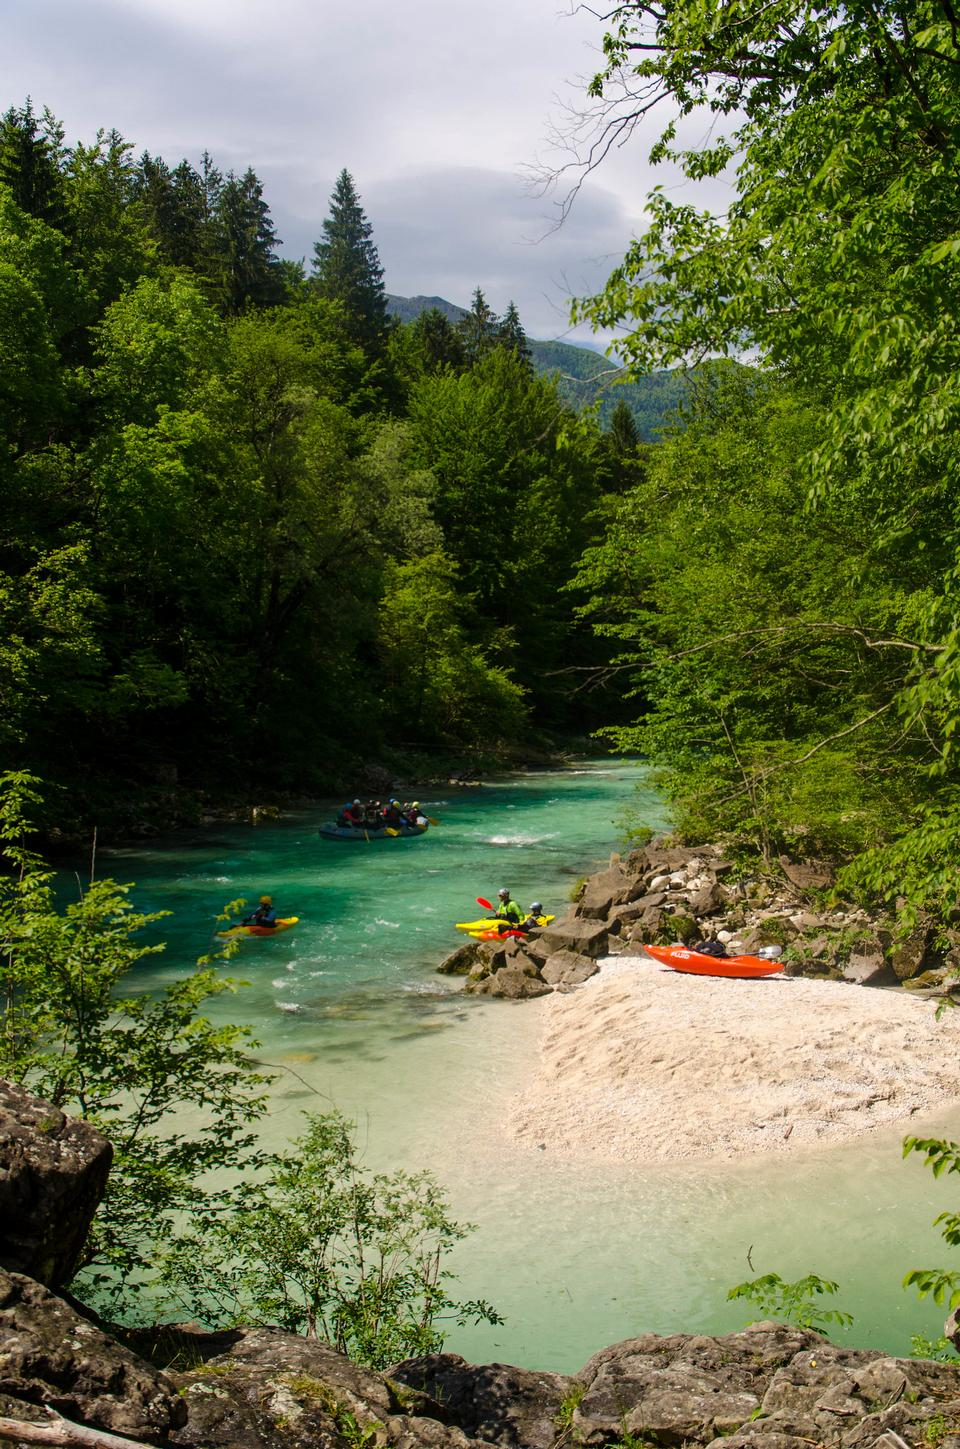 River rafting in the forests